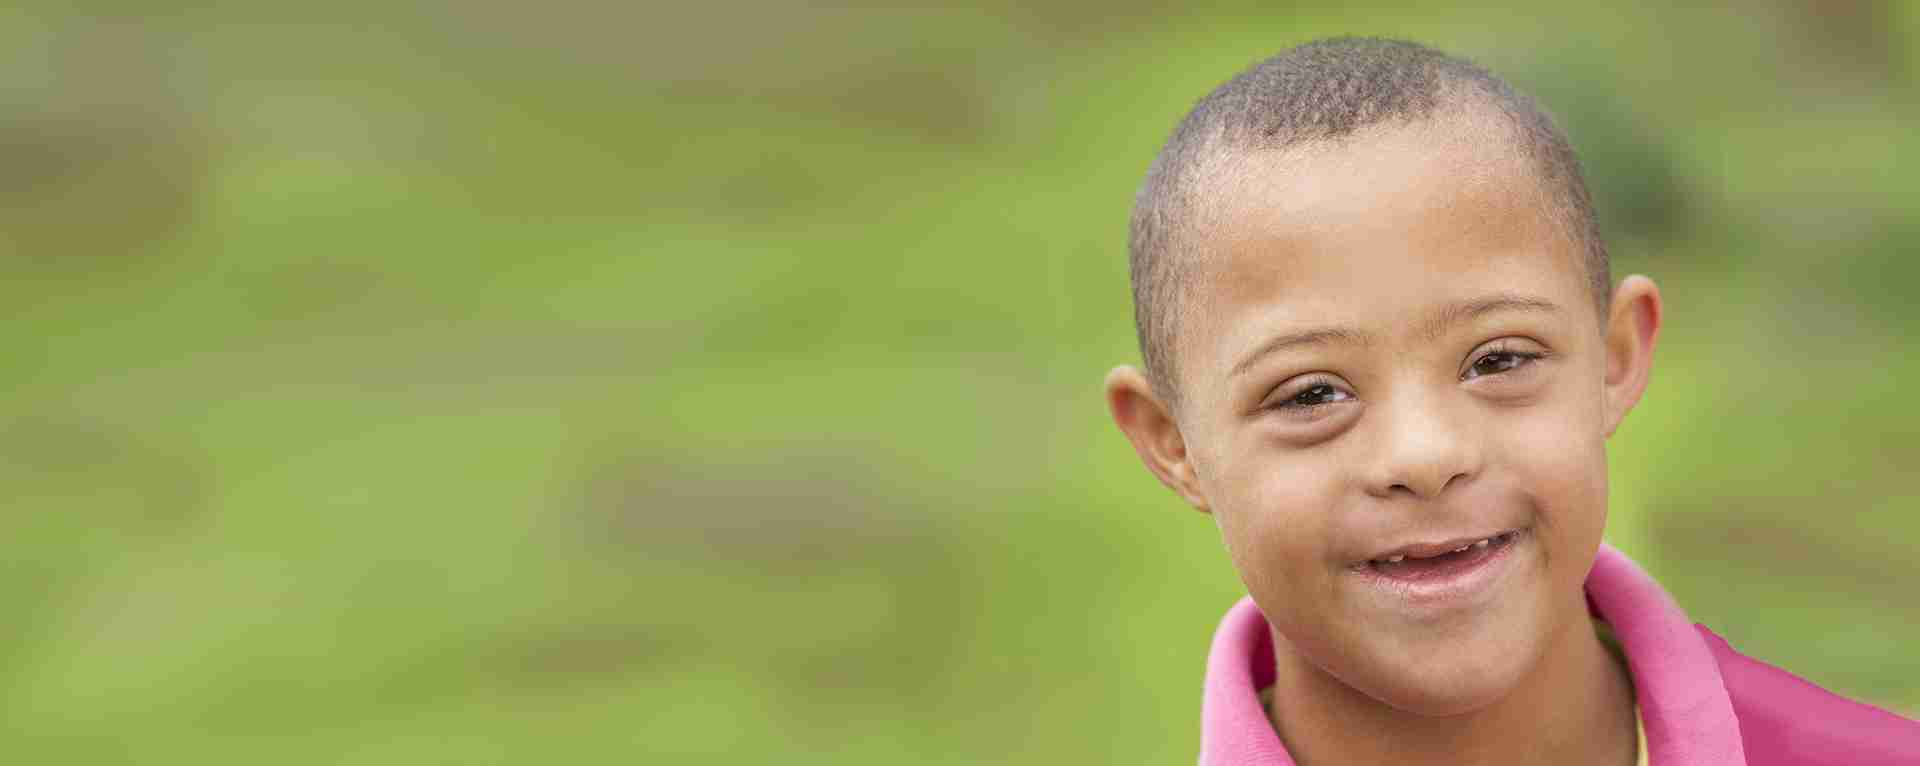 Smiling little boy with Down Syndrome